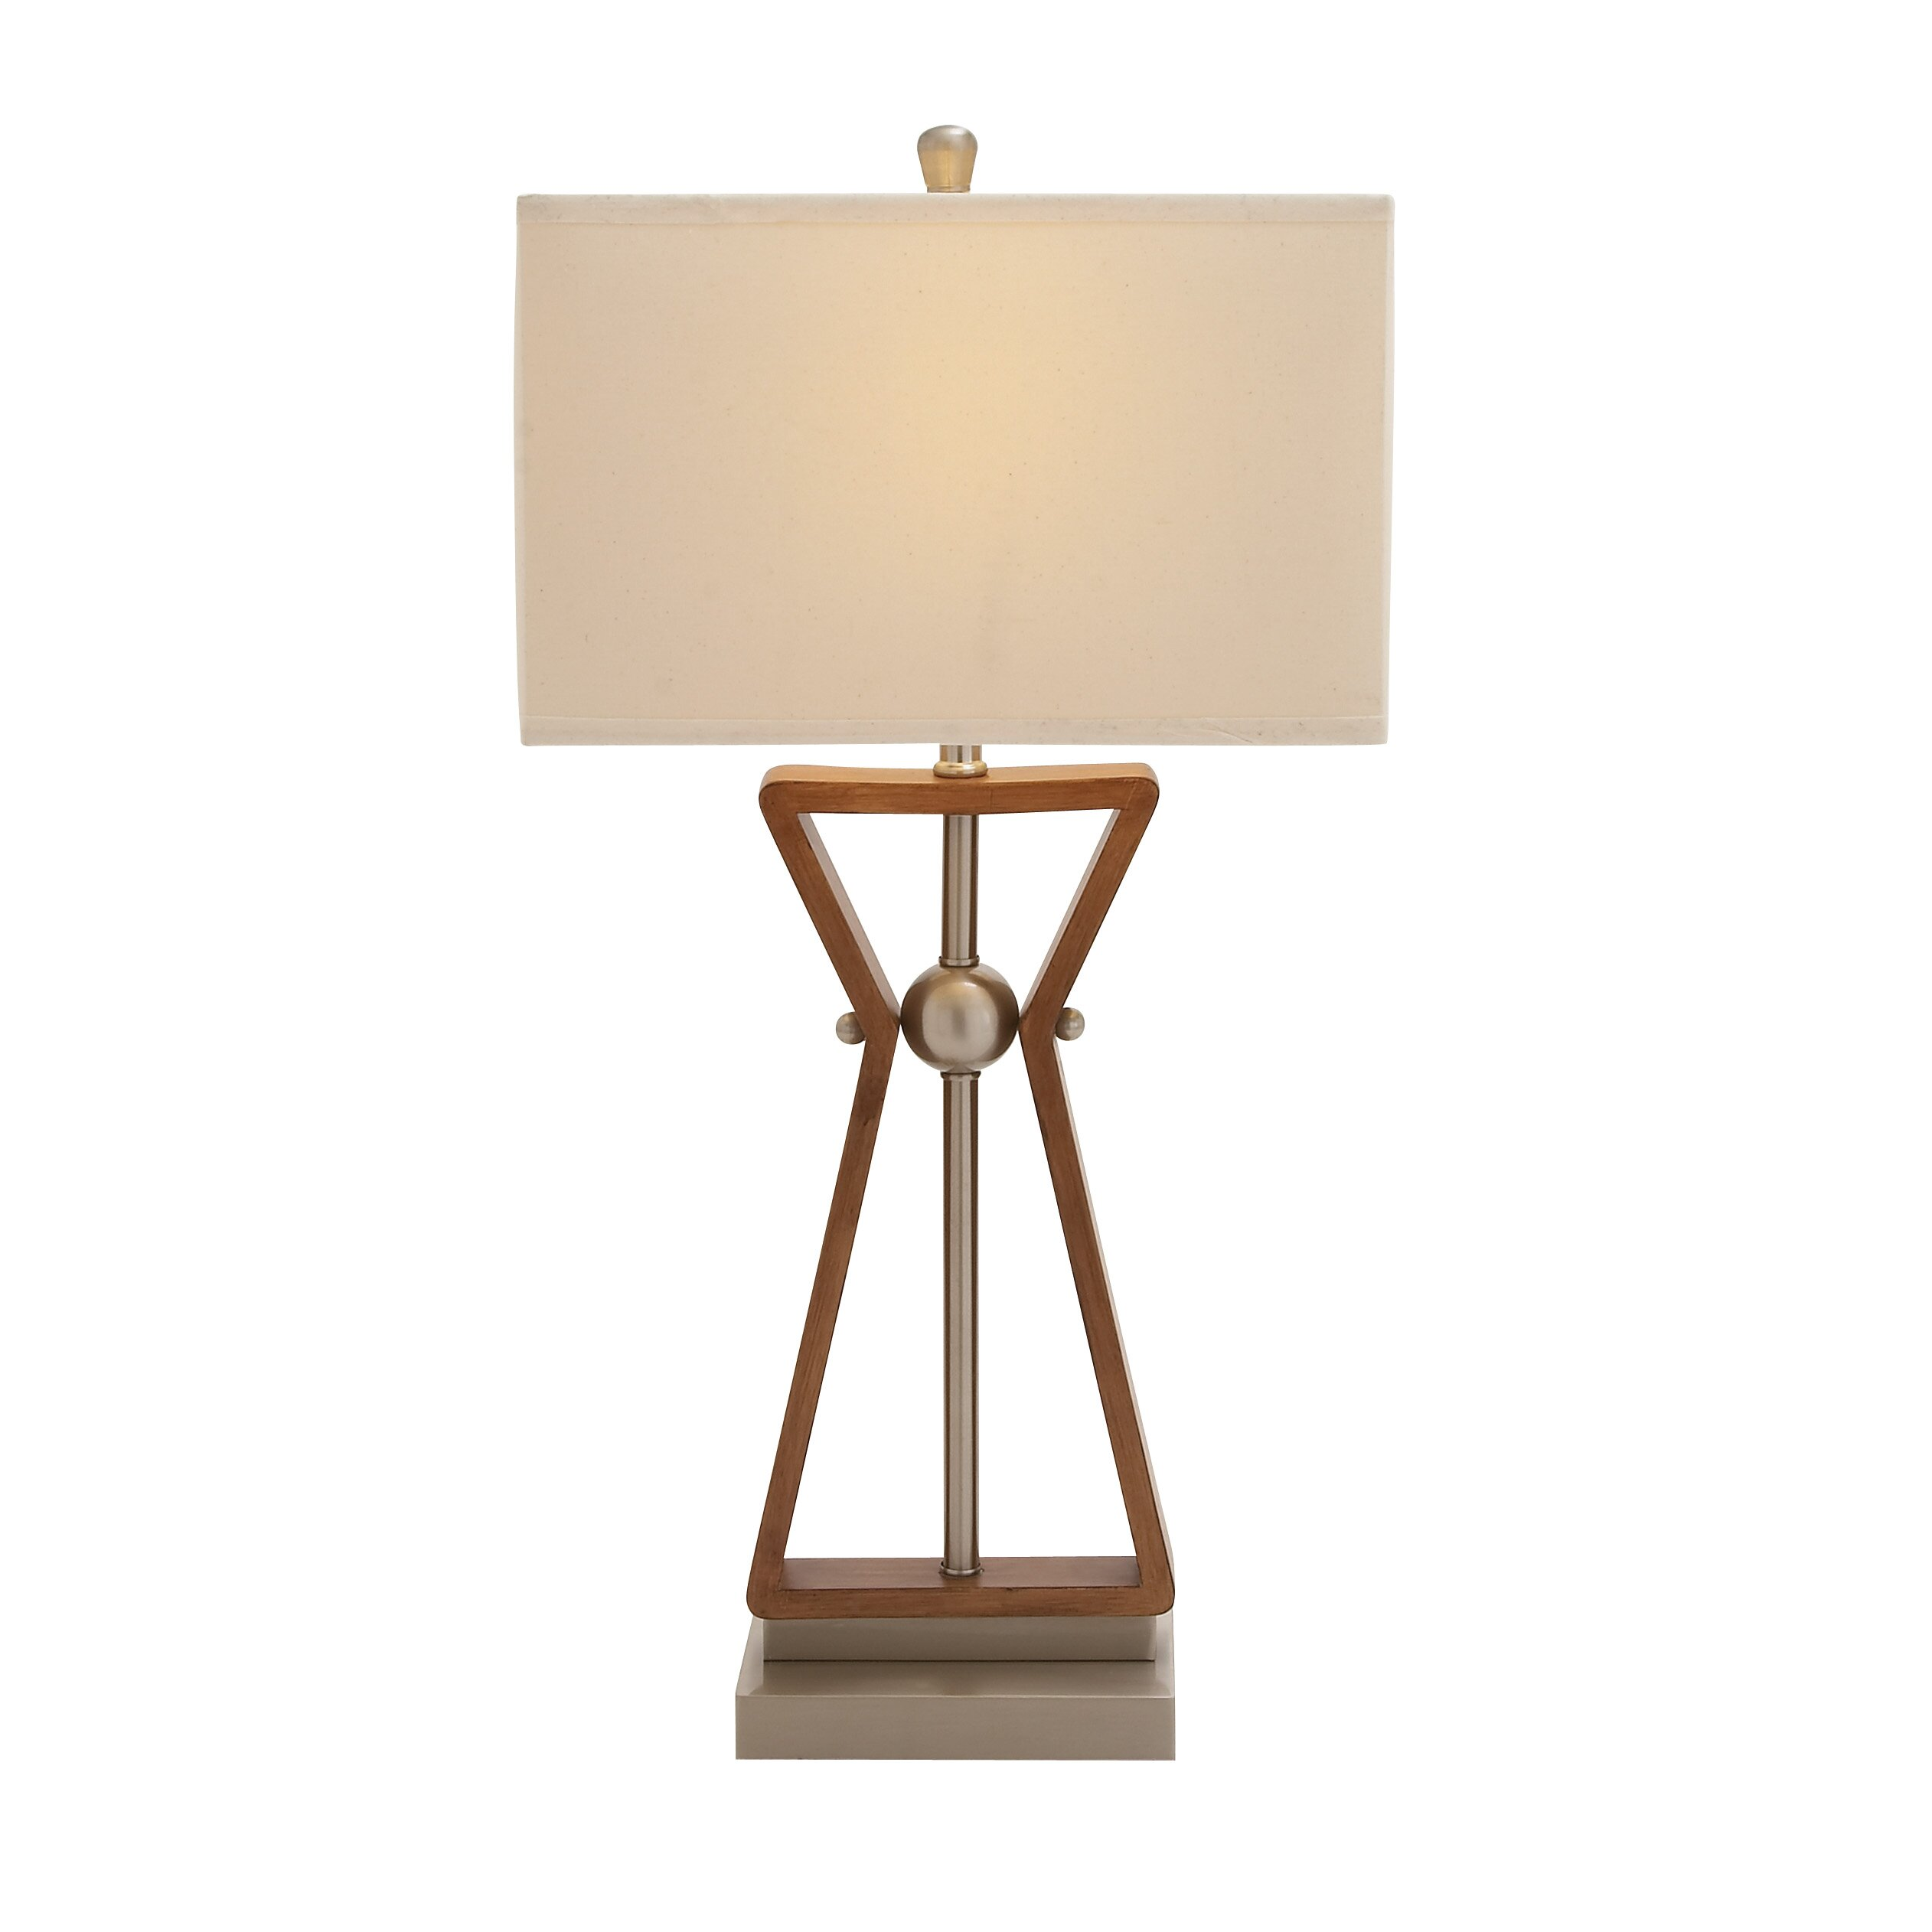 Wood Stainless Steel Task 32quot H Table Lamp with  : Woodland Imports Wood Stainless Steel Task 32 H Table Lamp with Oval Shade 59515 from www.wayfair.com size 2524 x 2524 jpeg 237kB